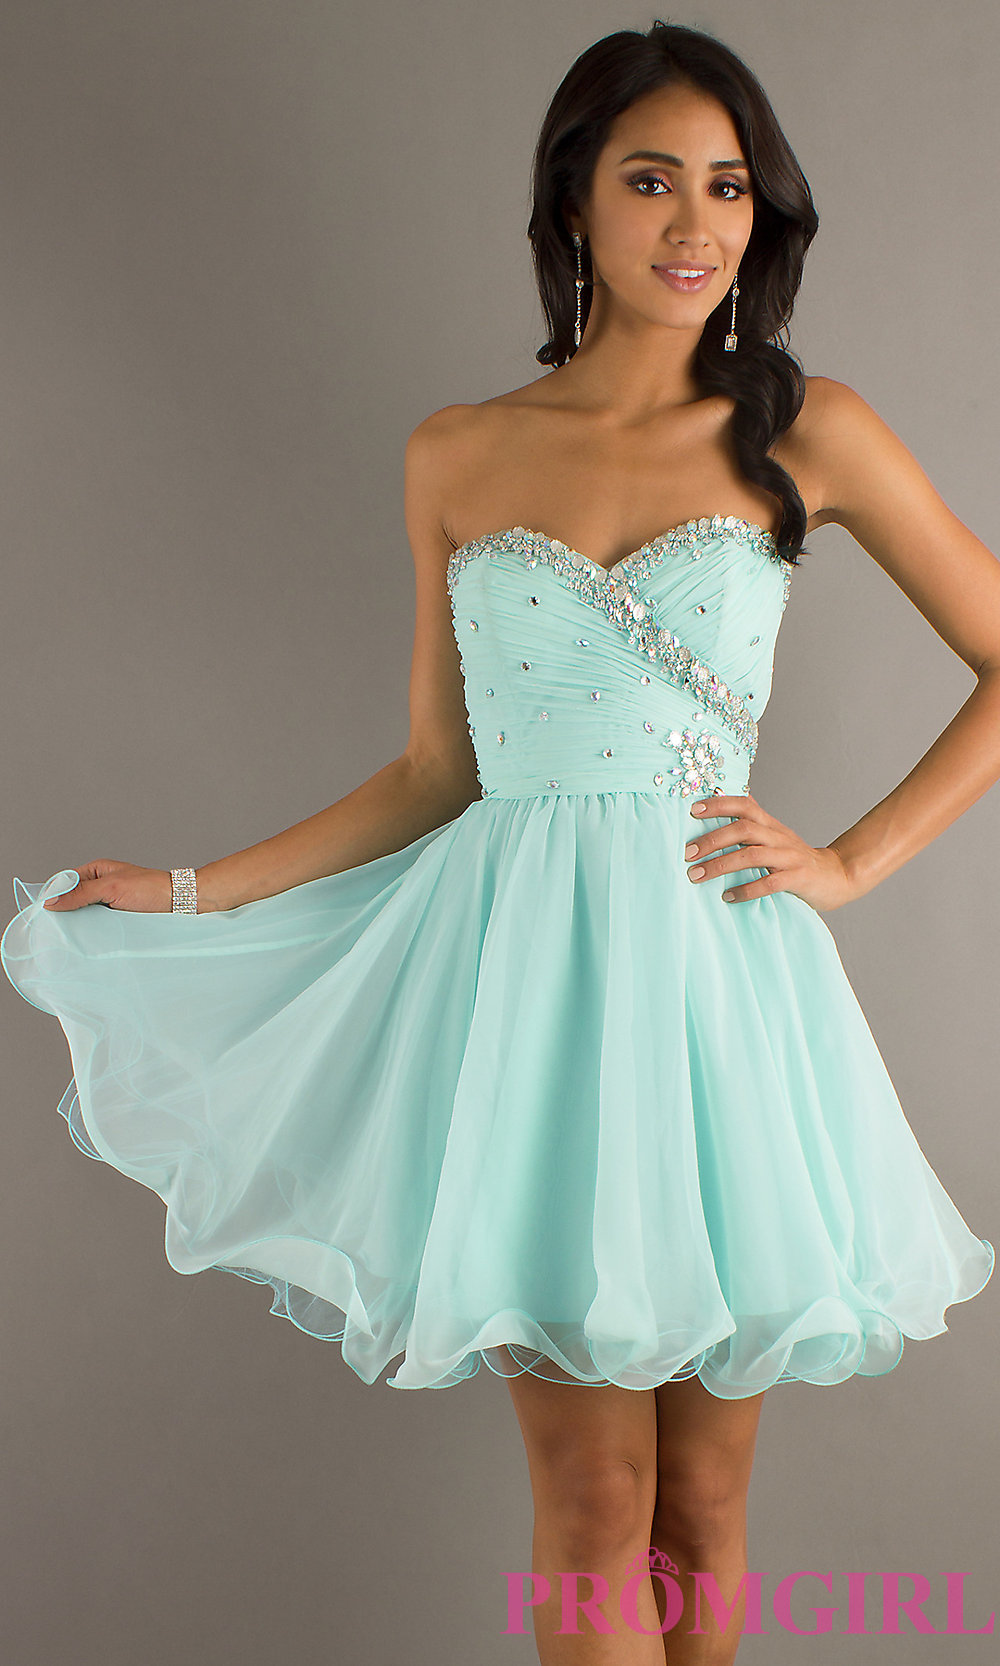 Short Dance Dresses